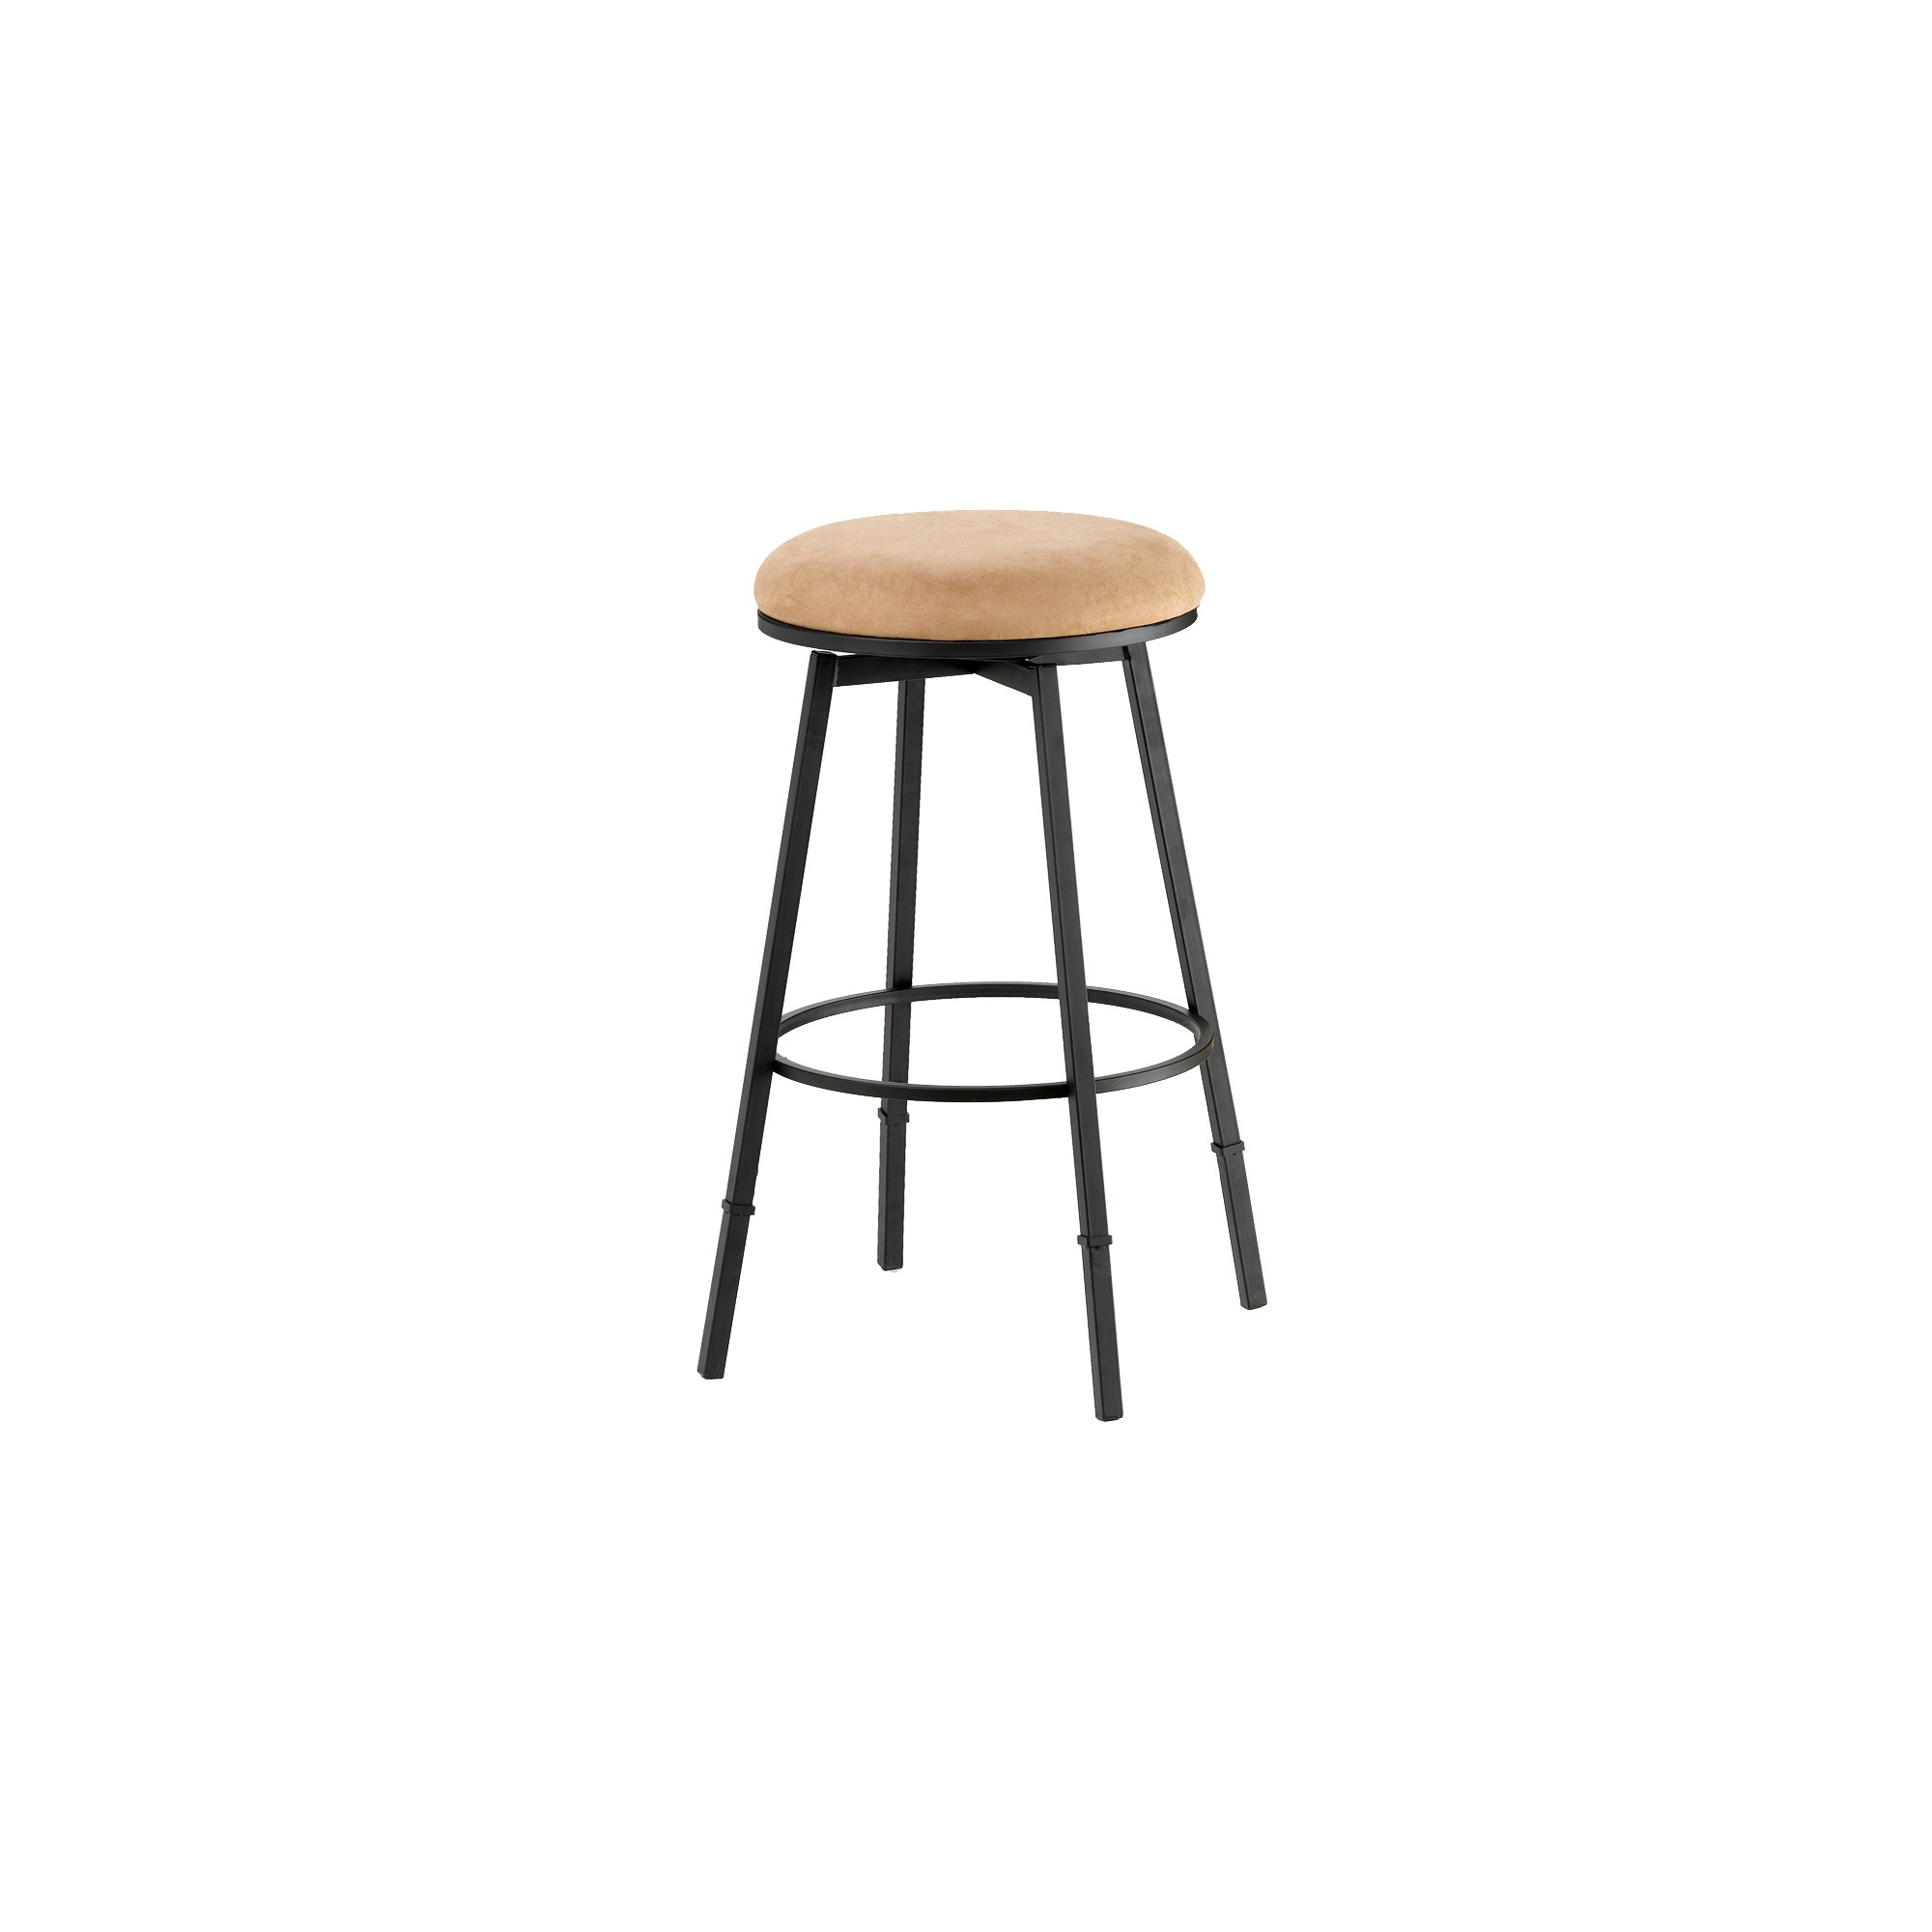 Groovy Sanders Backless 24 Counter Stool Metal Suede Hillsdale Gmtry Best Dining Table And Chair Ideas Images Gmtryco